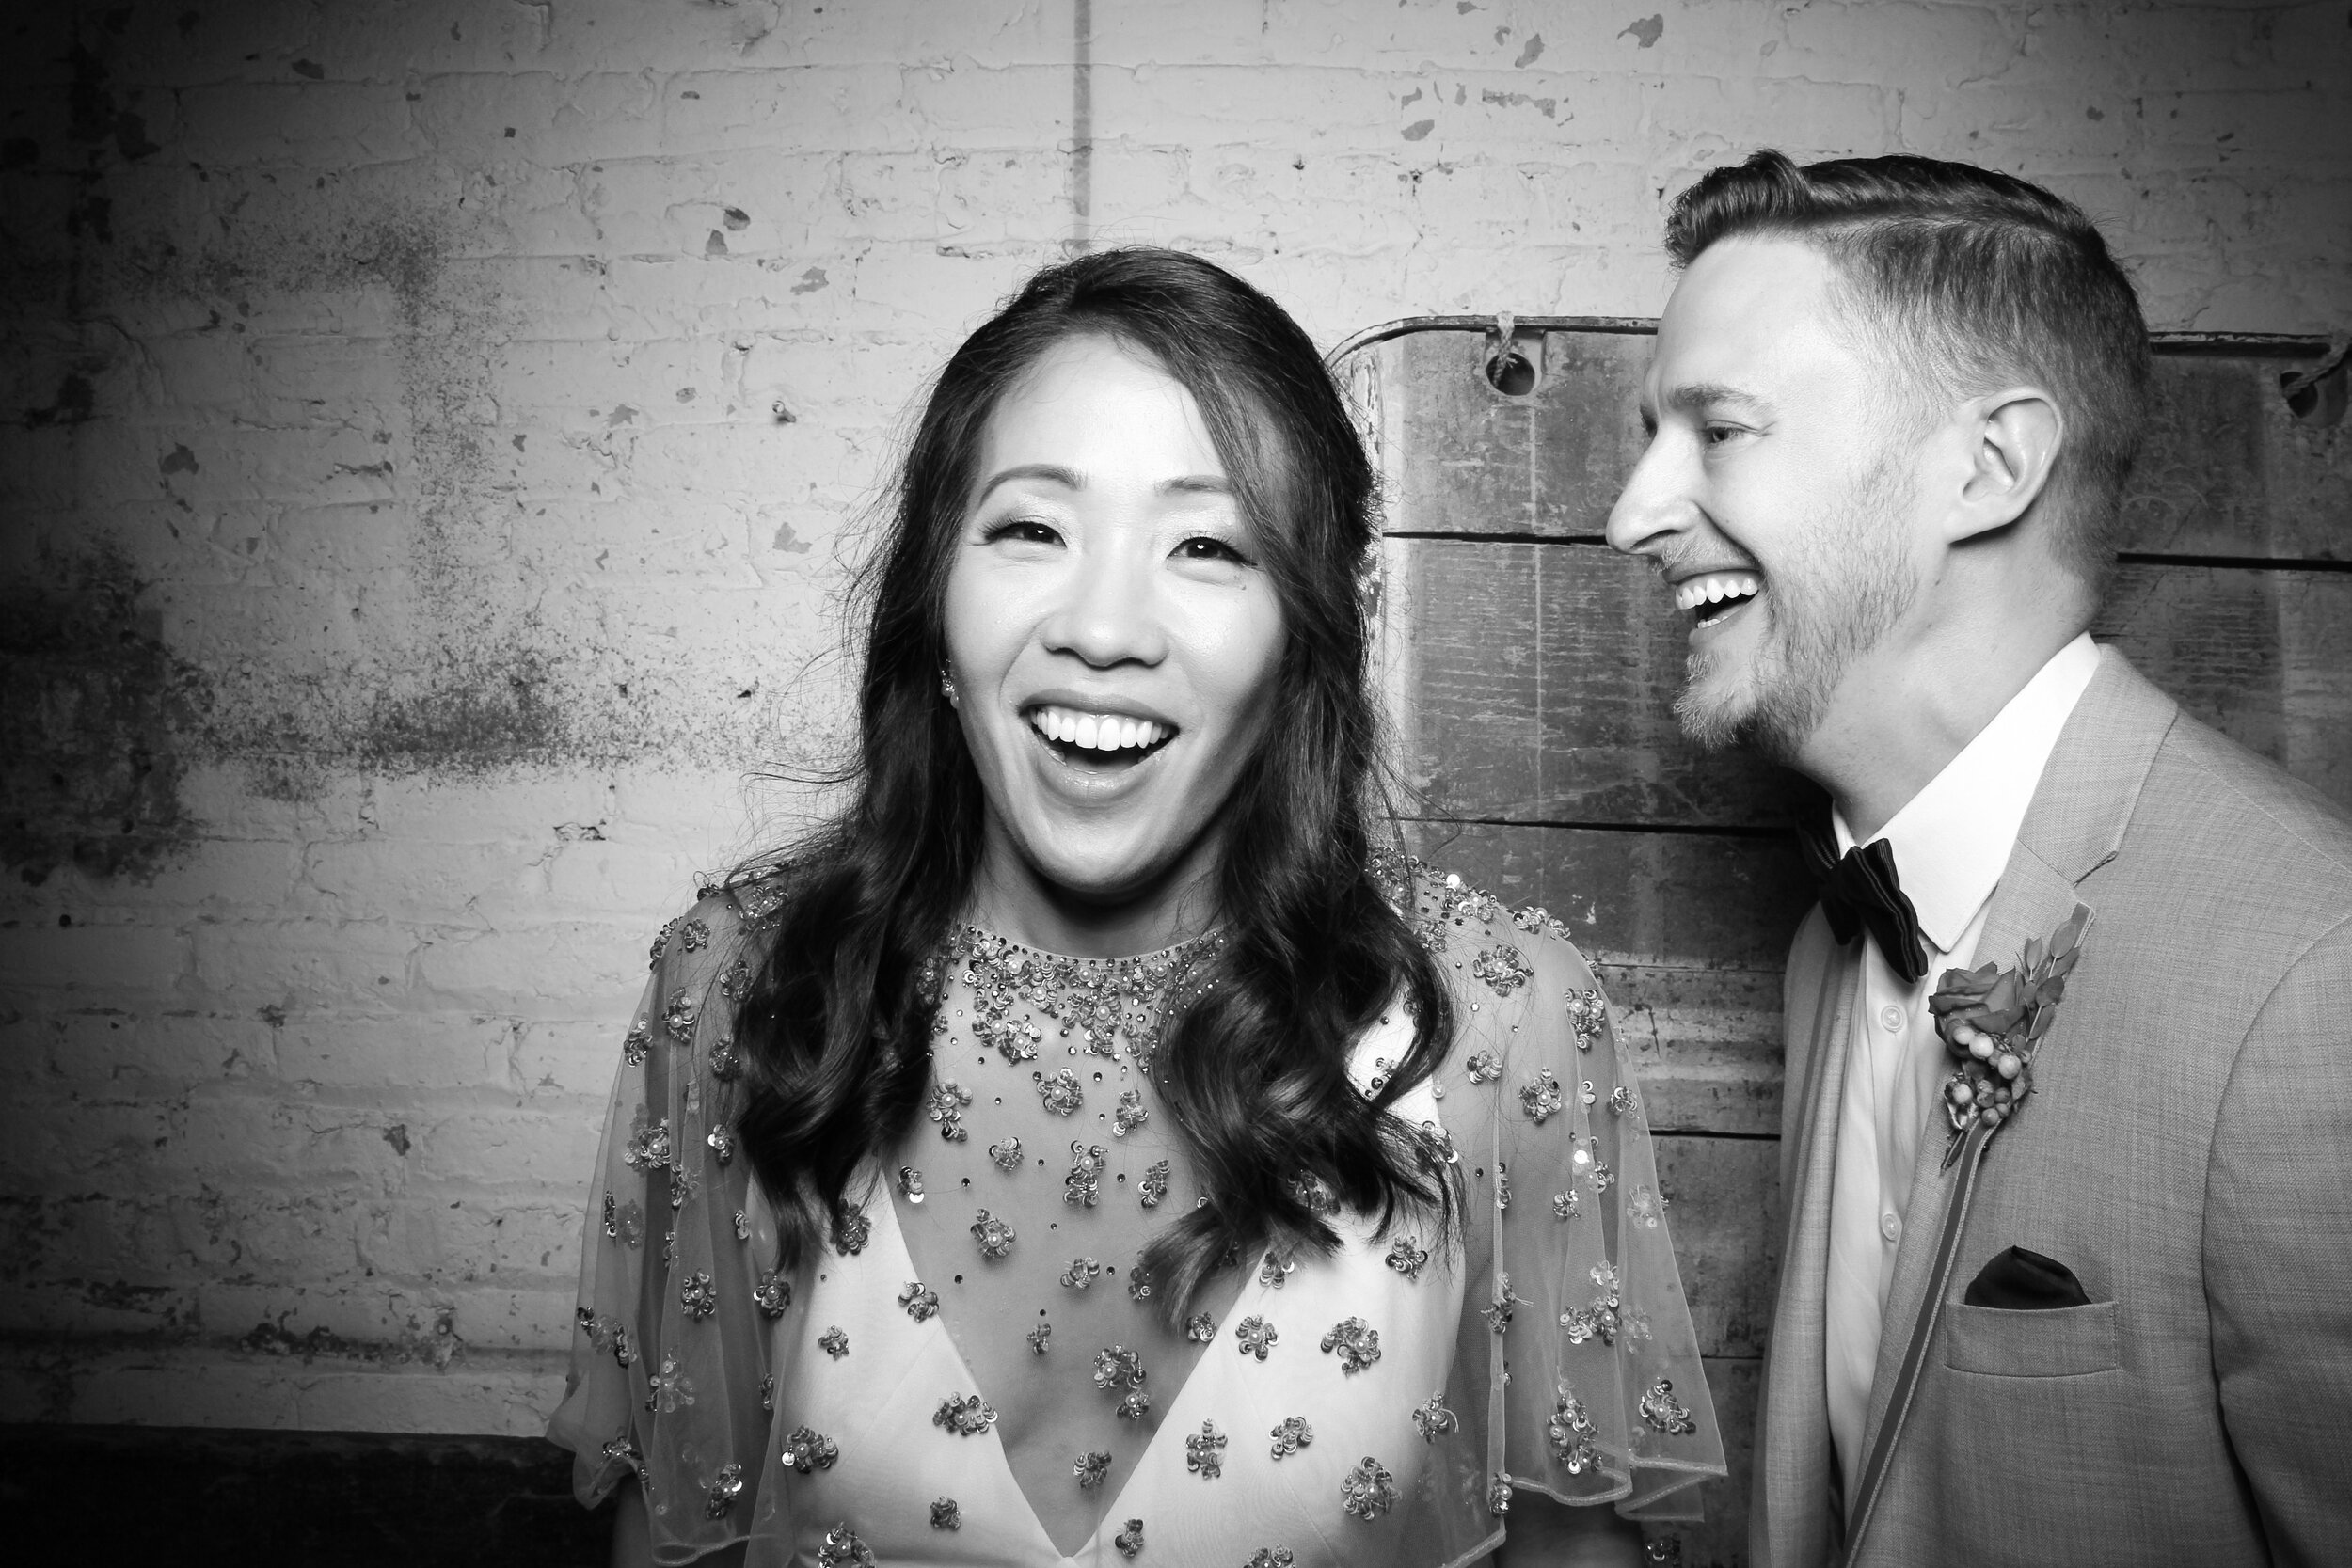 Chicago_Vintage_Wedding_Photobooth_Joinery_09.jpg